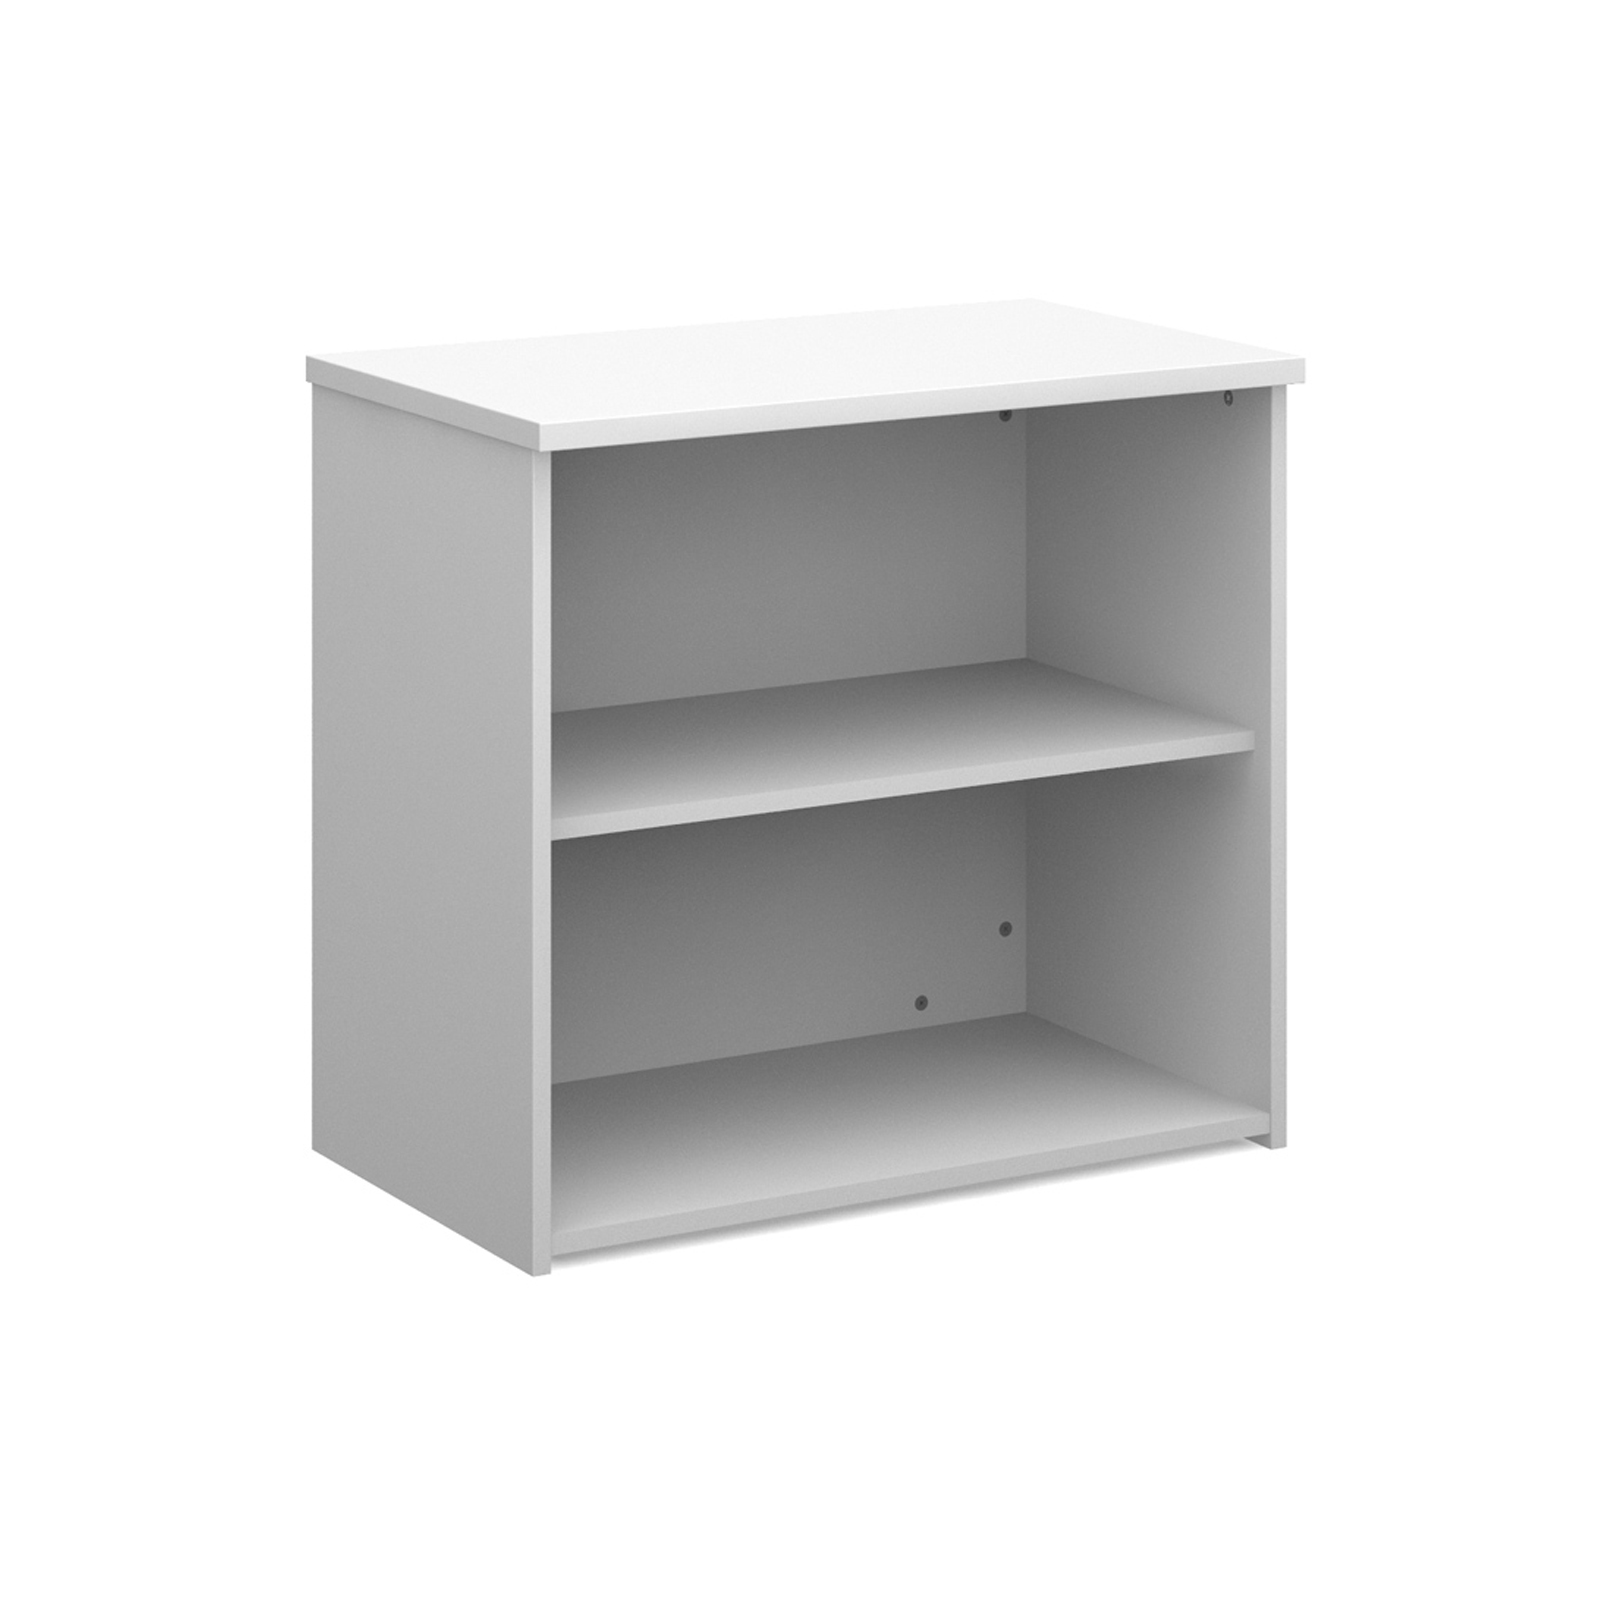 Up To 1200mm High Universal bookcase 740mm high with 1 shelf - white